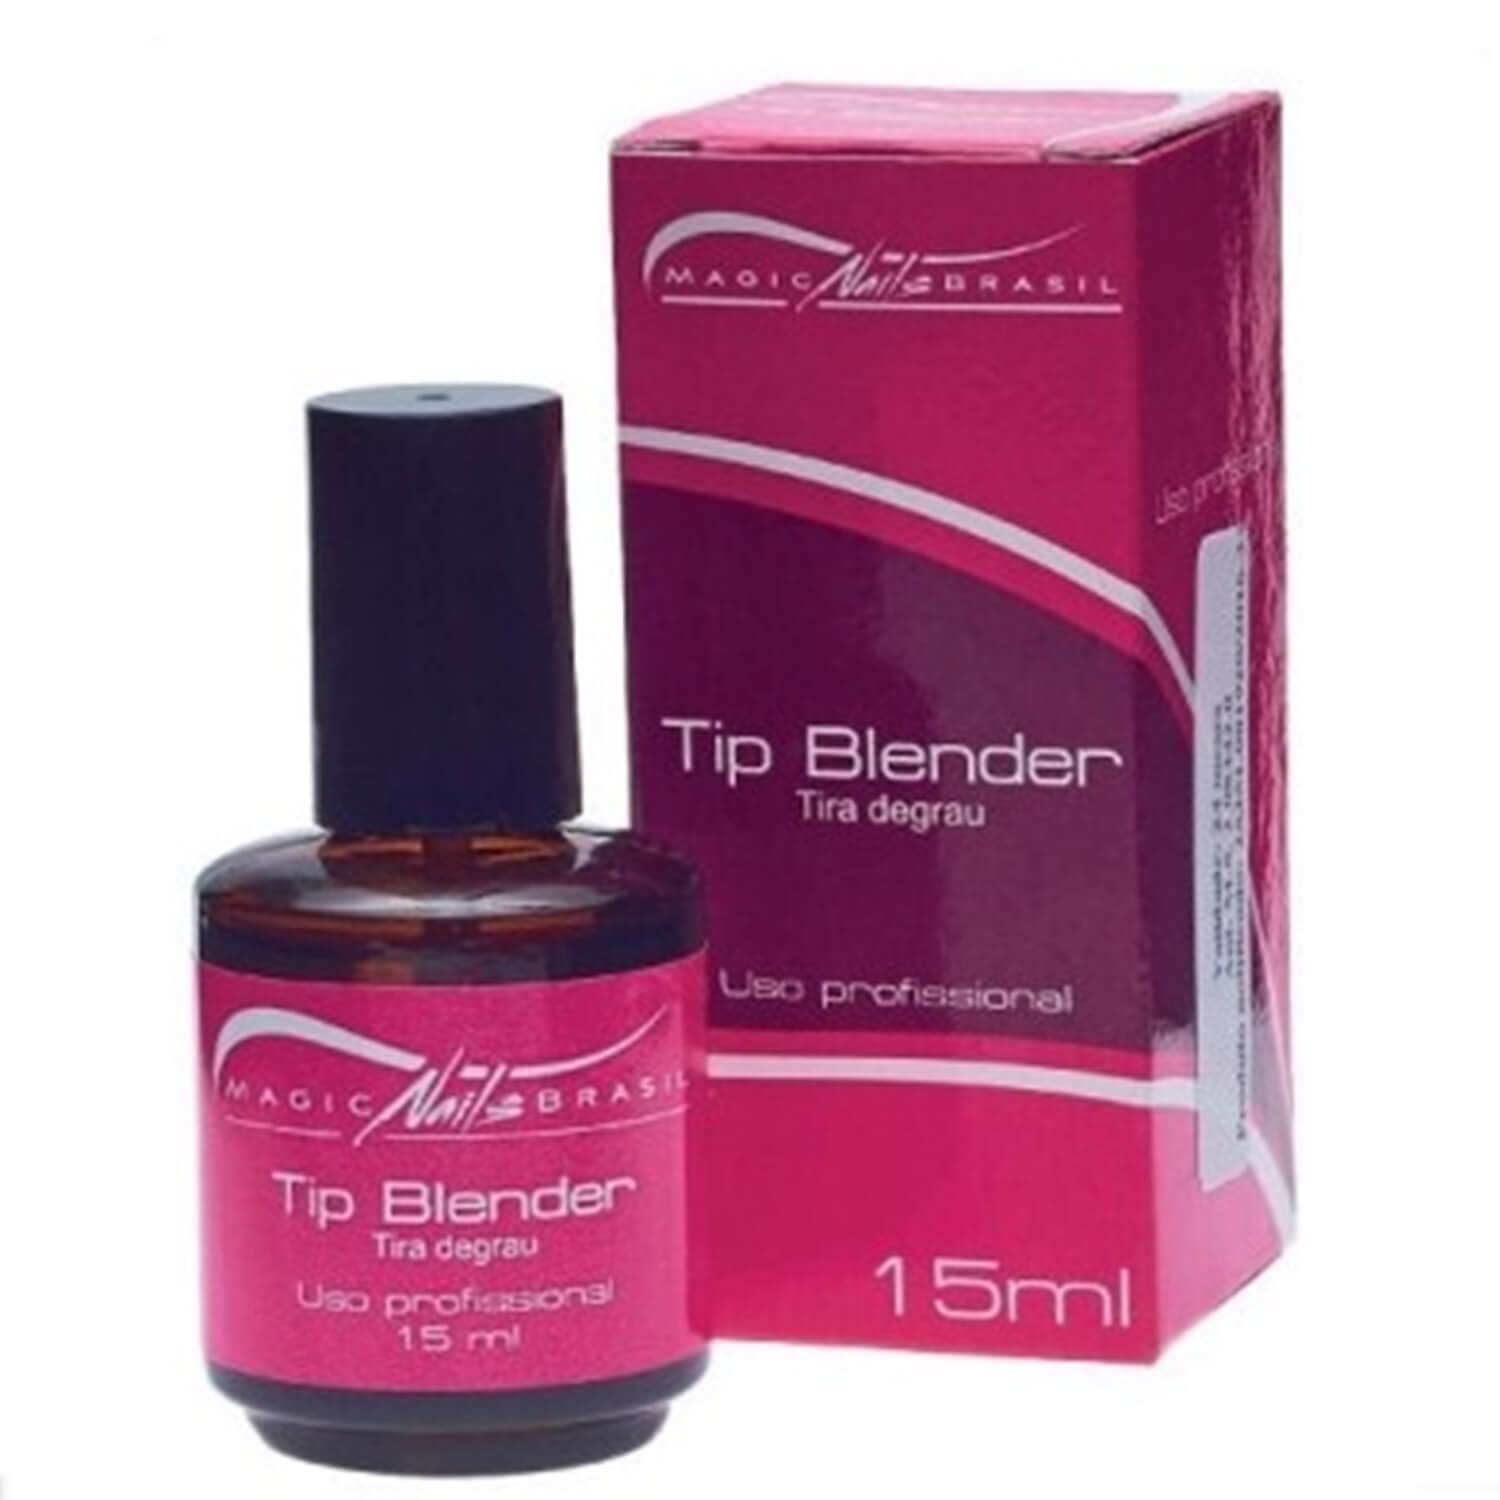 Tip Blender - Magic Nails - 15ml